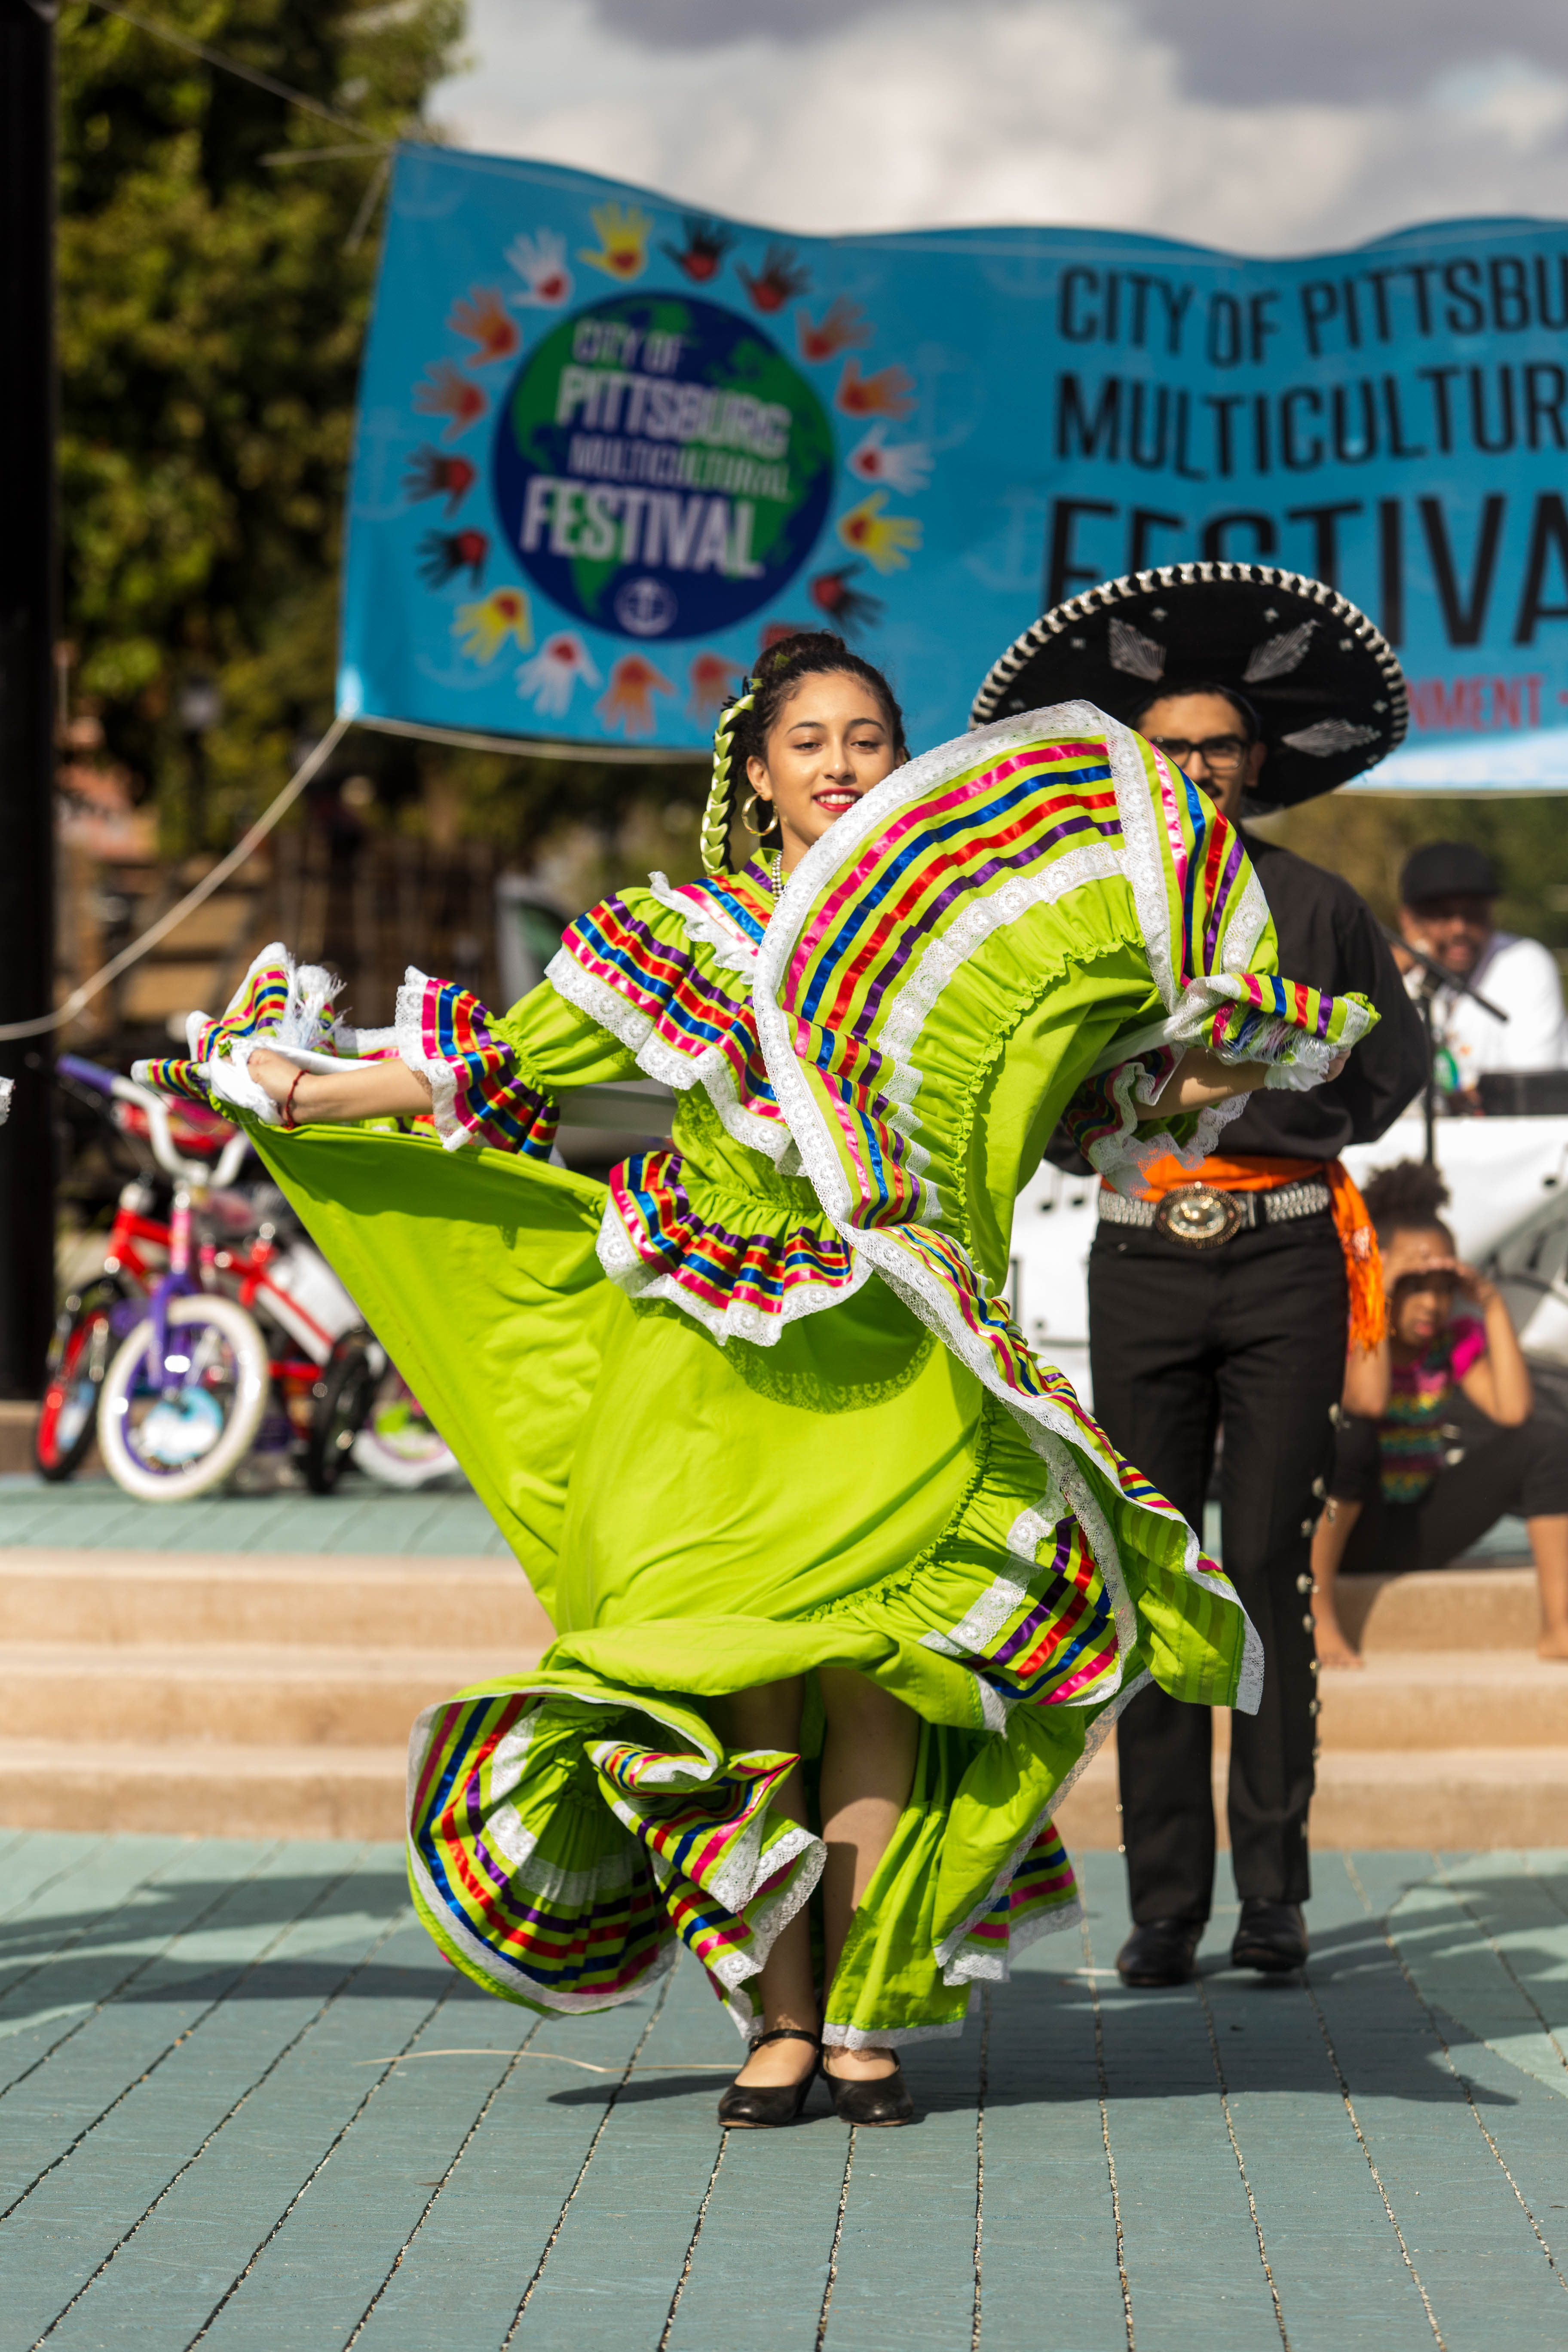 CITY_PITTSBURG_MULTICULTURAL_OCTOBER_2016 (597)